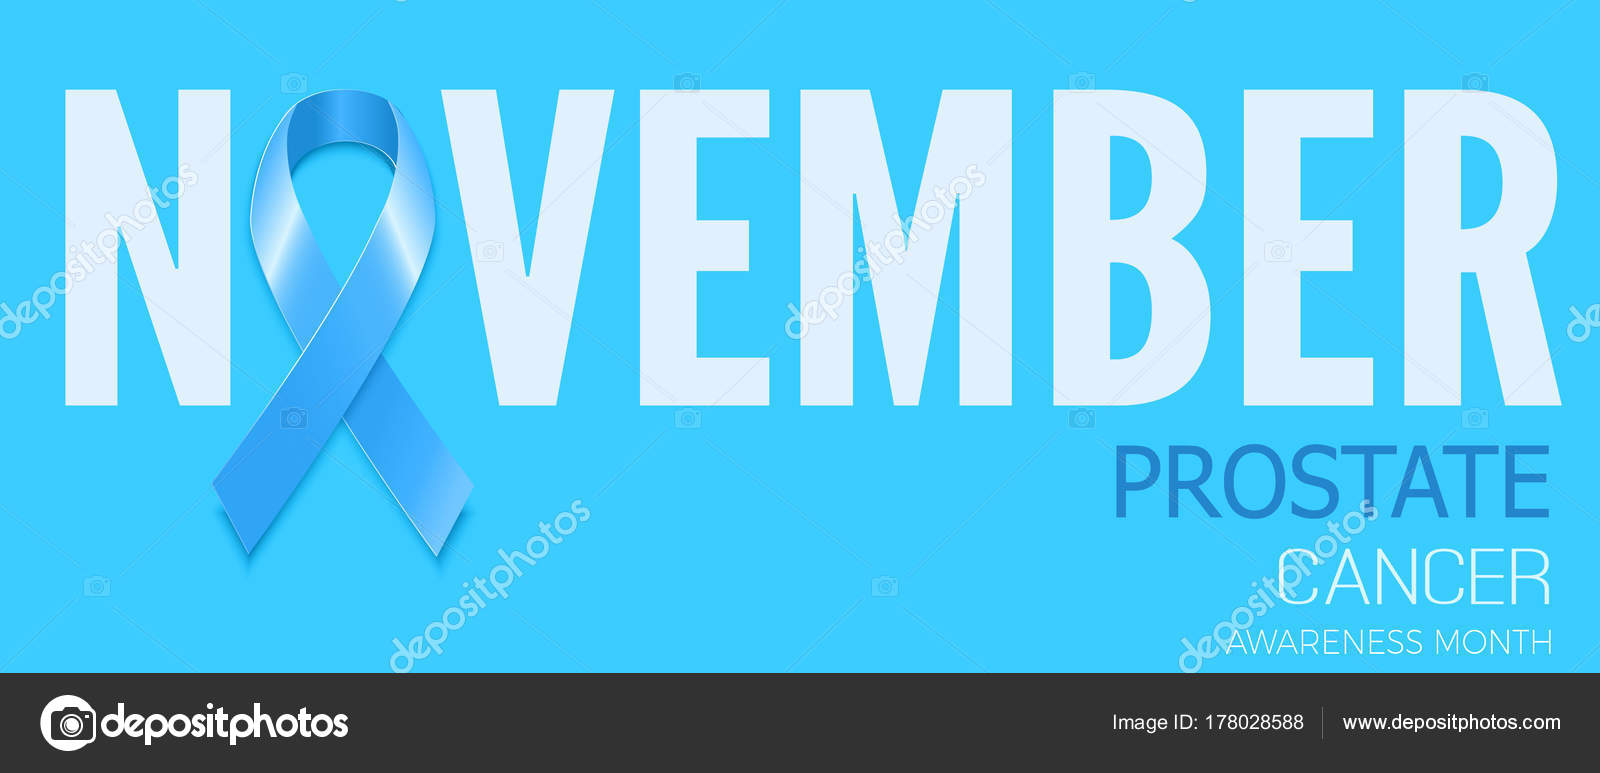 Blue ribbon symbol for prostate cancer awareness month vector b blue ribbon symbol for prostate cancer awareness month vector b stock vector buycottarizona Image collections